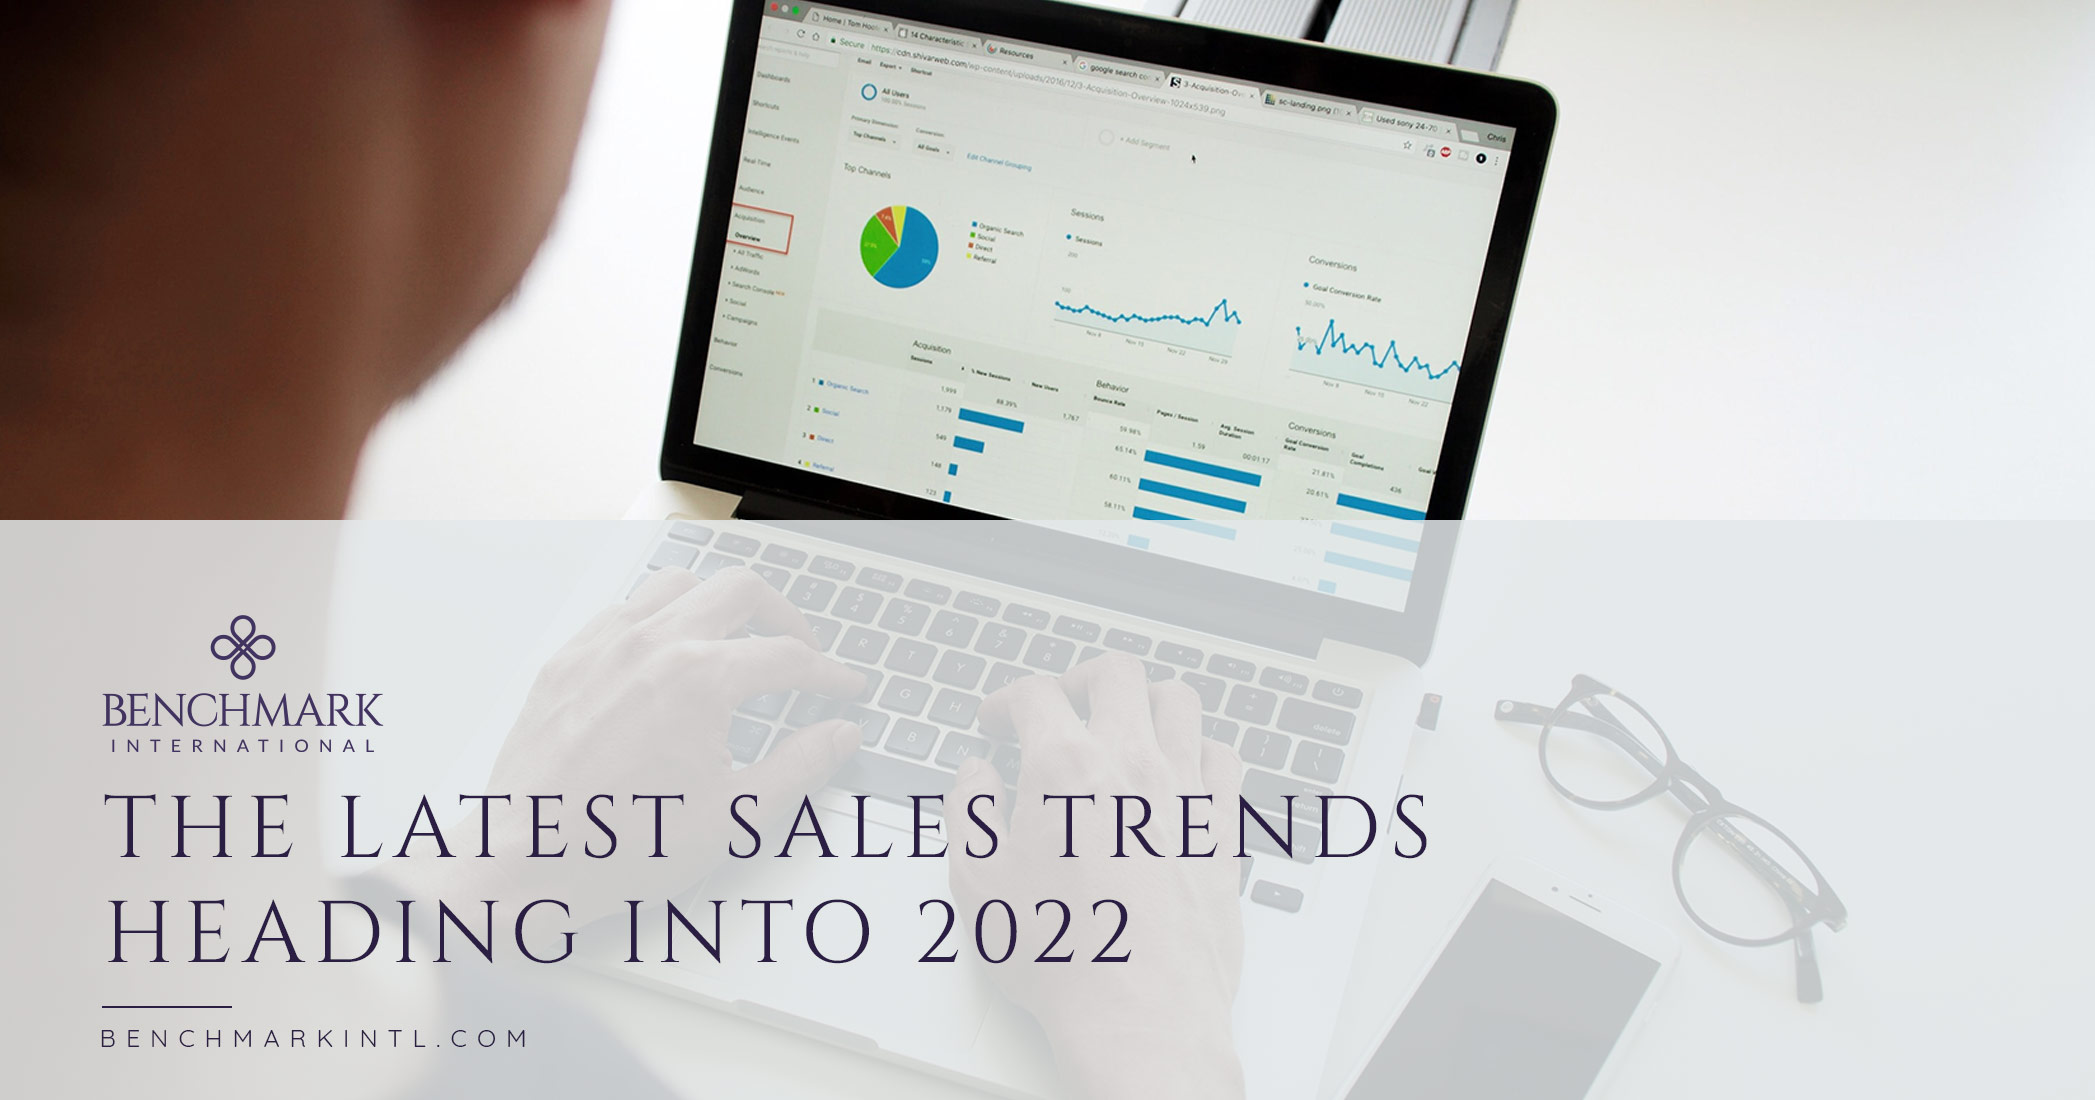 The Latest Sales Trends Heading Into 2022